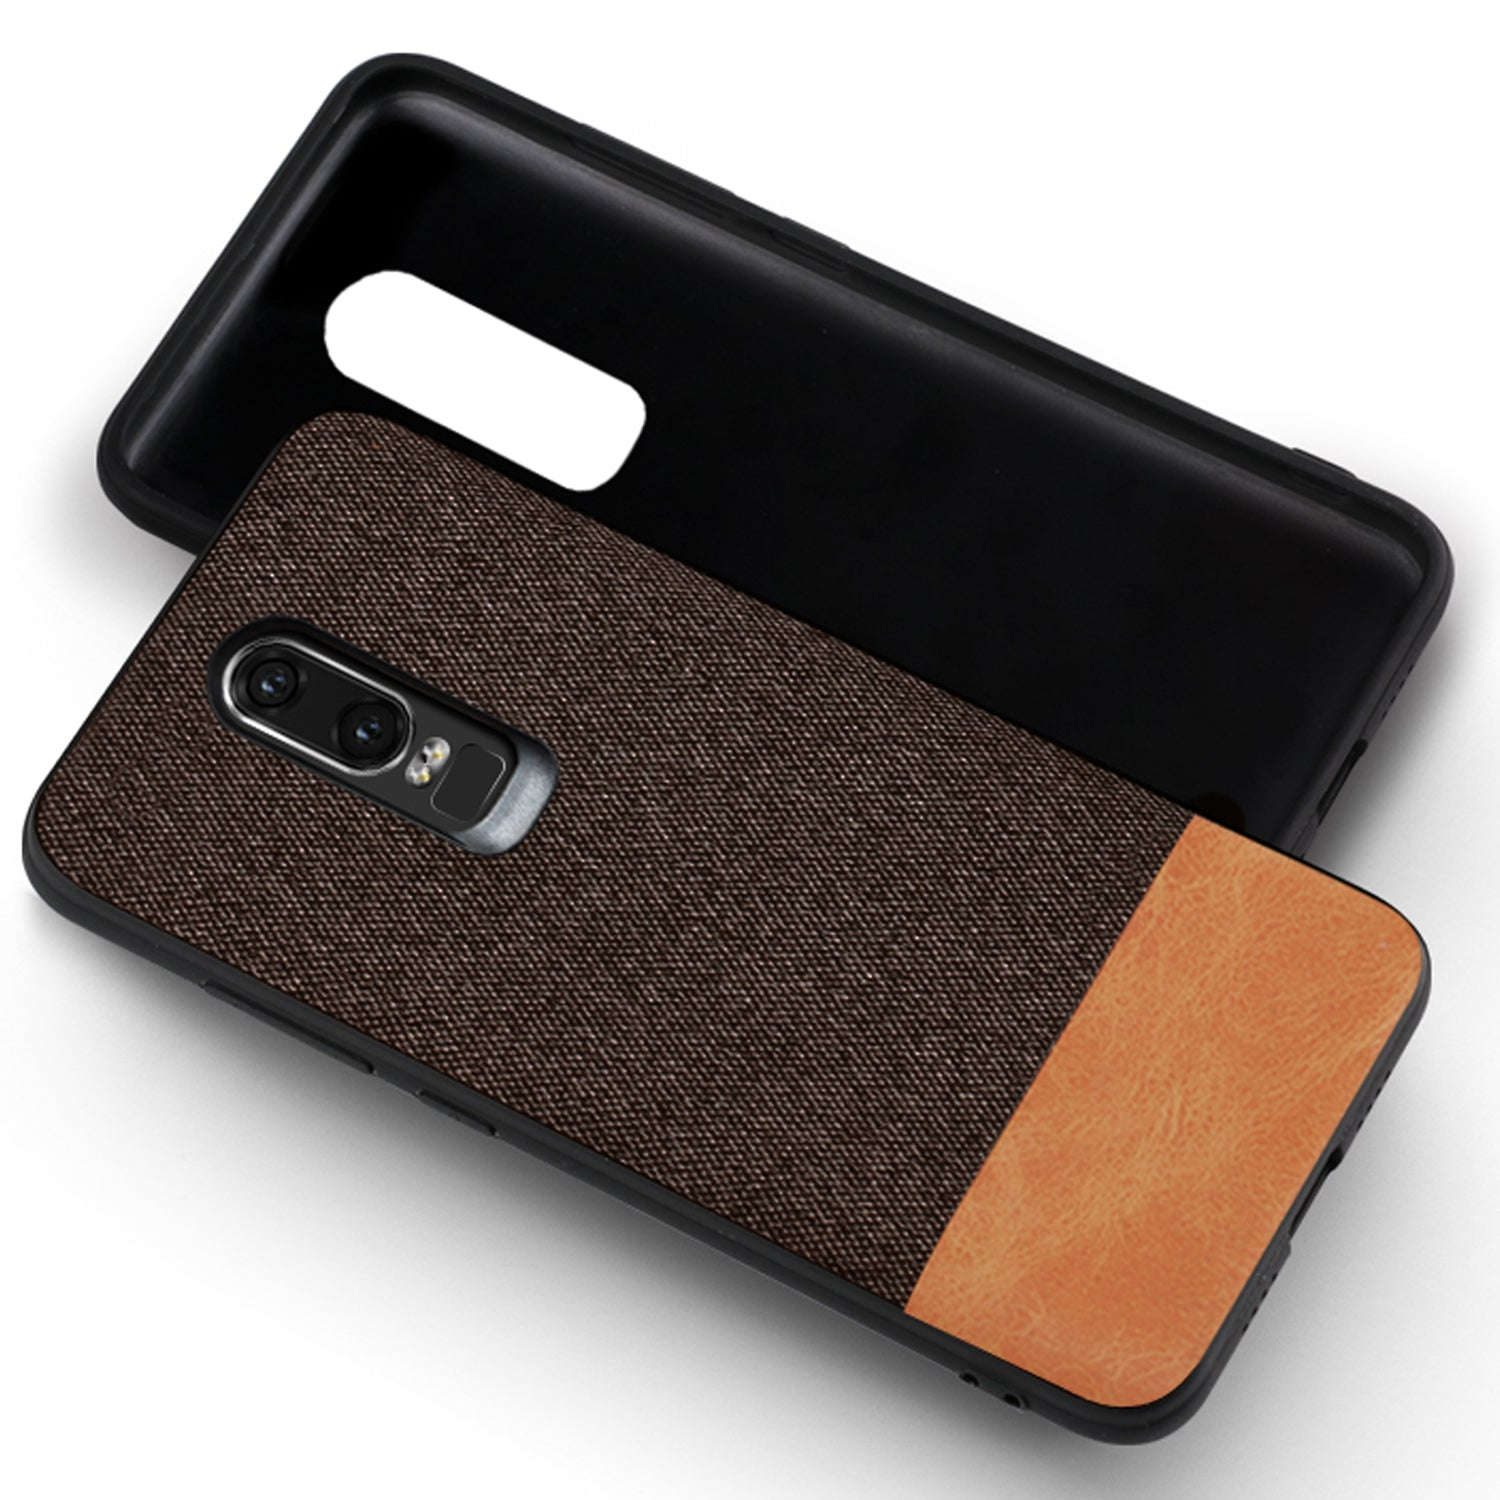 Fabric + Leather Hybrid Protective Case Cover for Oneplus 6 - Brown - Mobizang